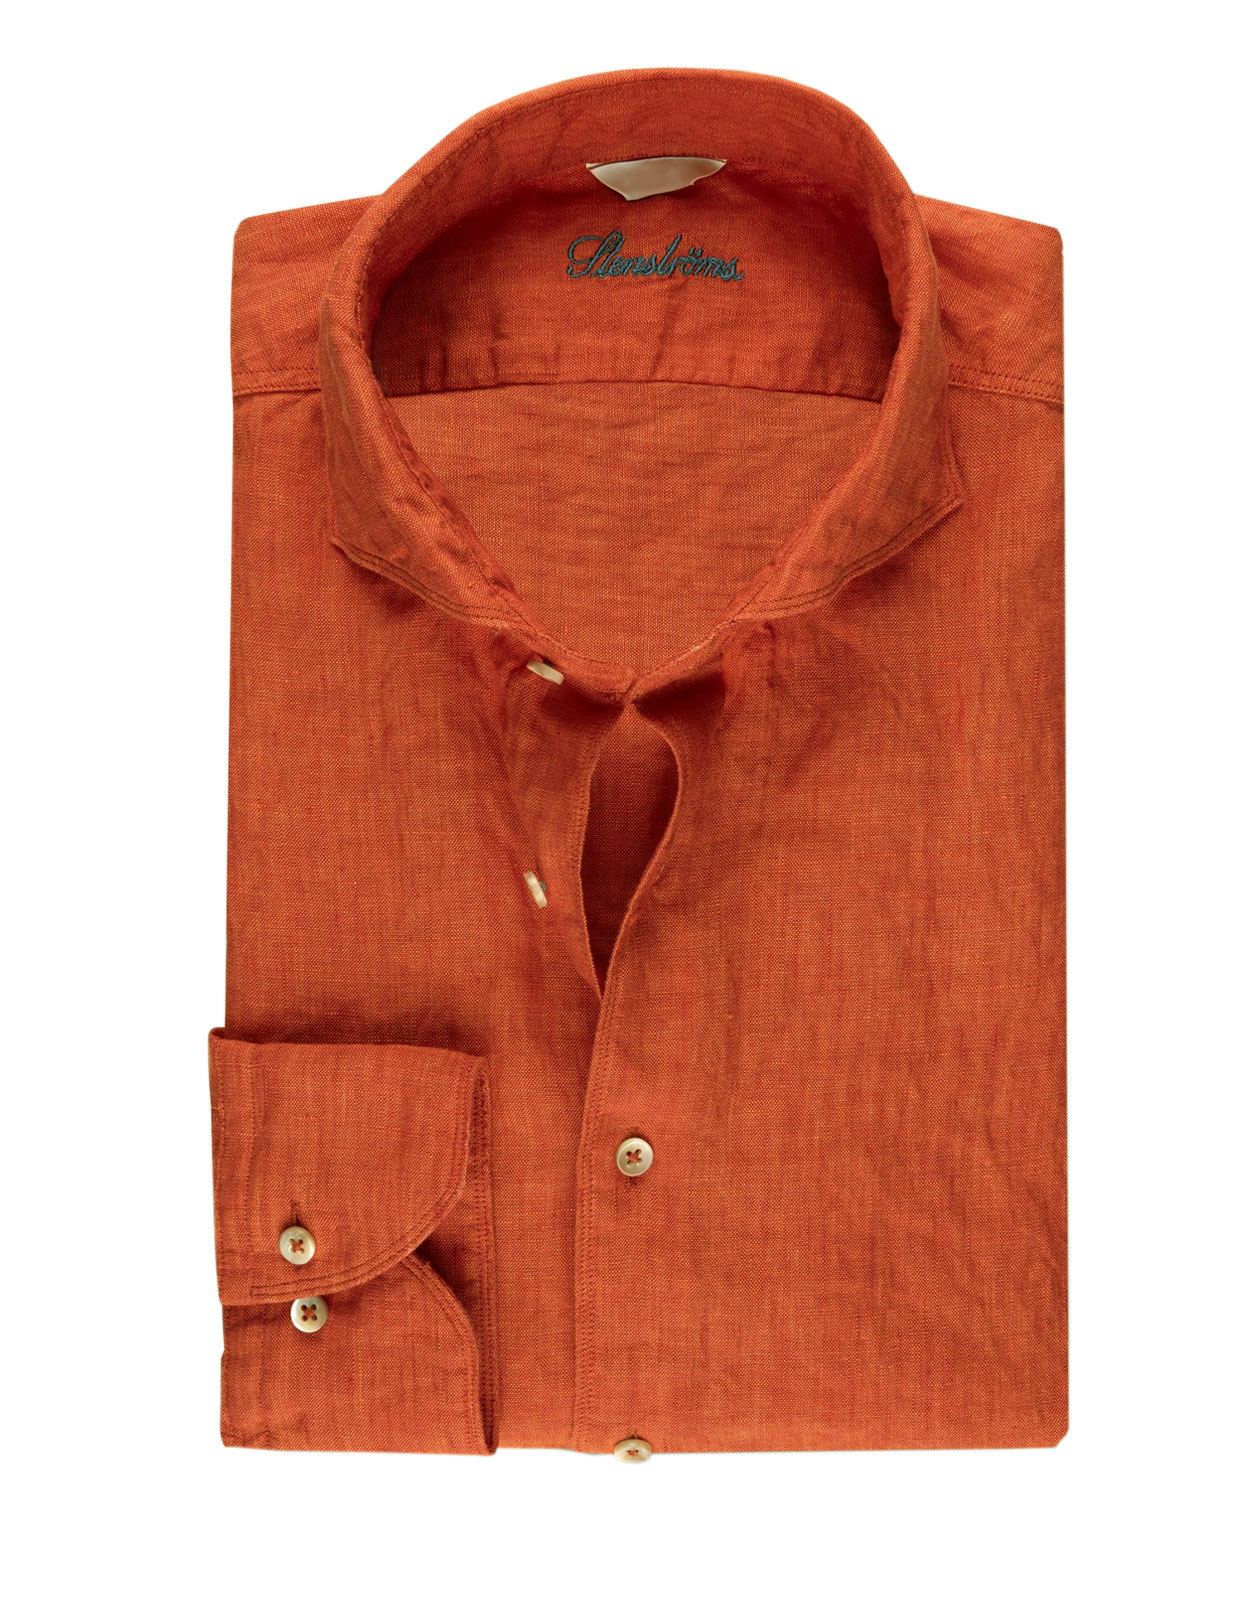 Slimline Linen Shirt Bright Orange